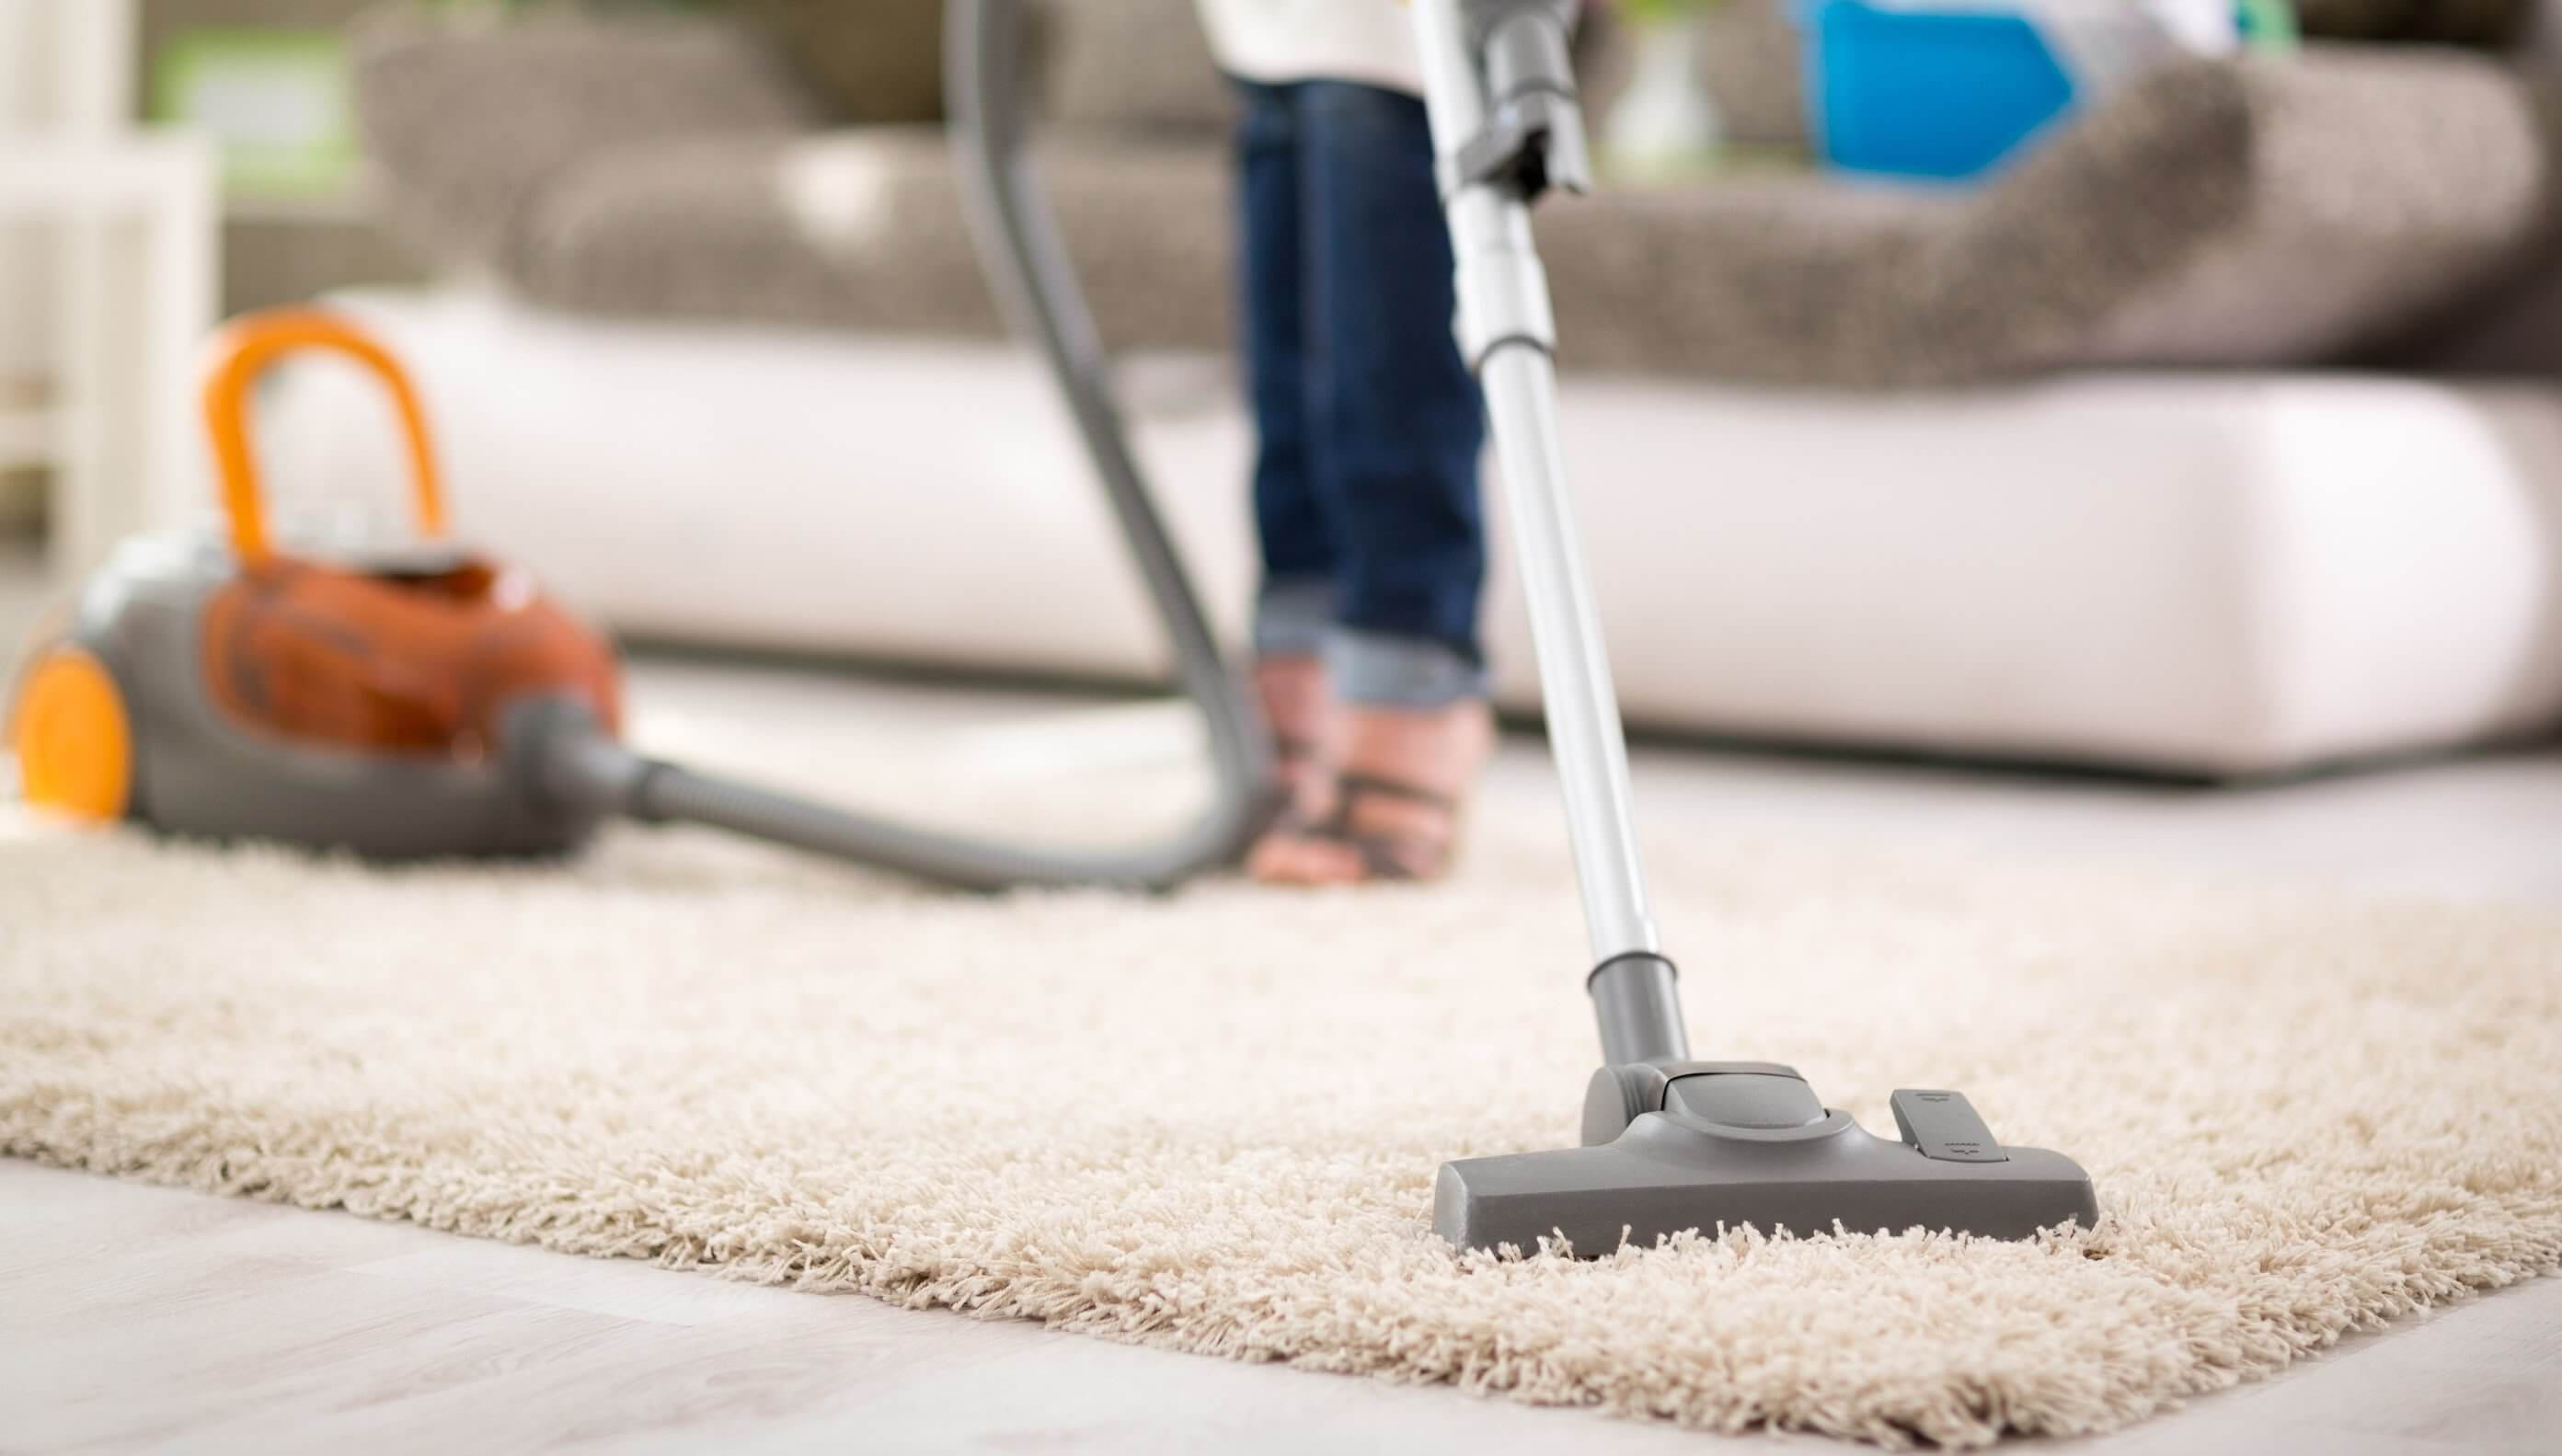 Get the Most Out of Your Vacuum